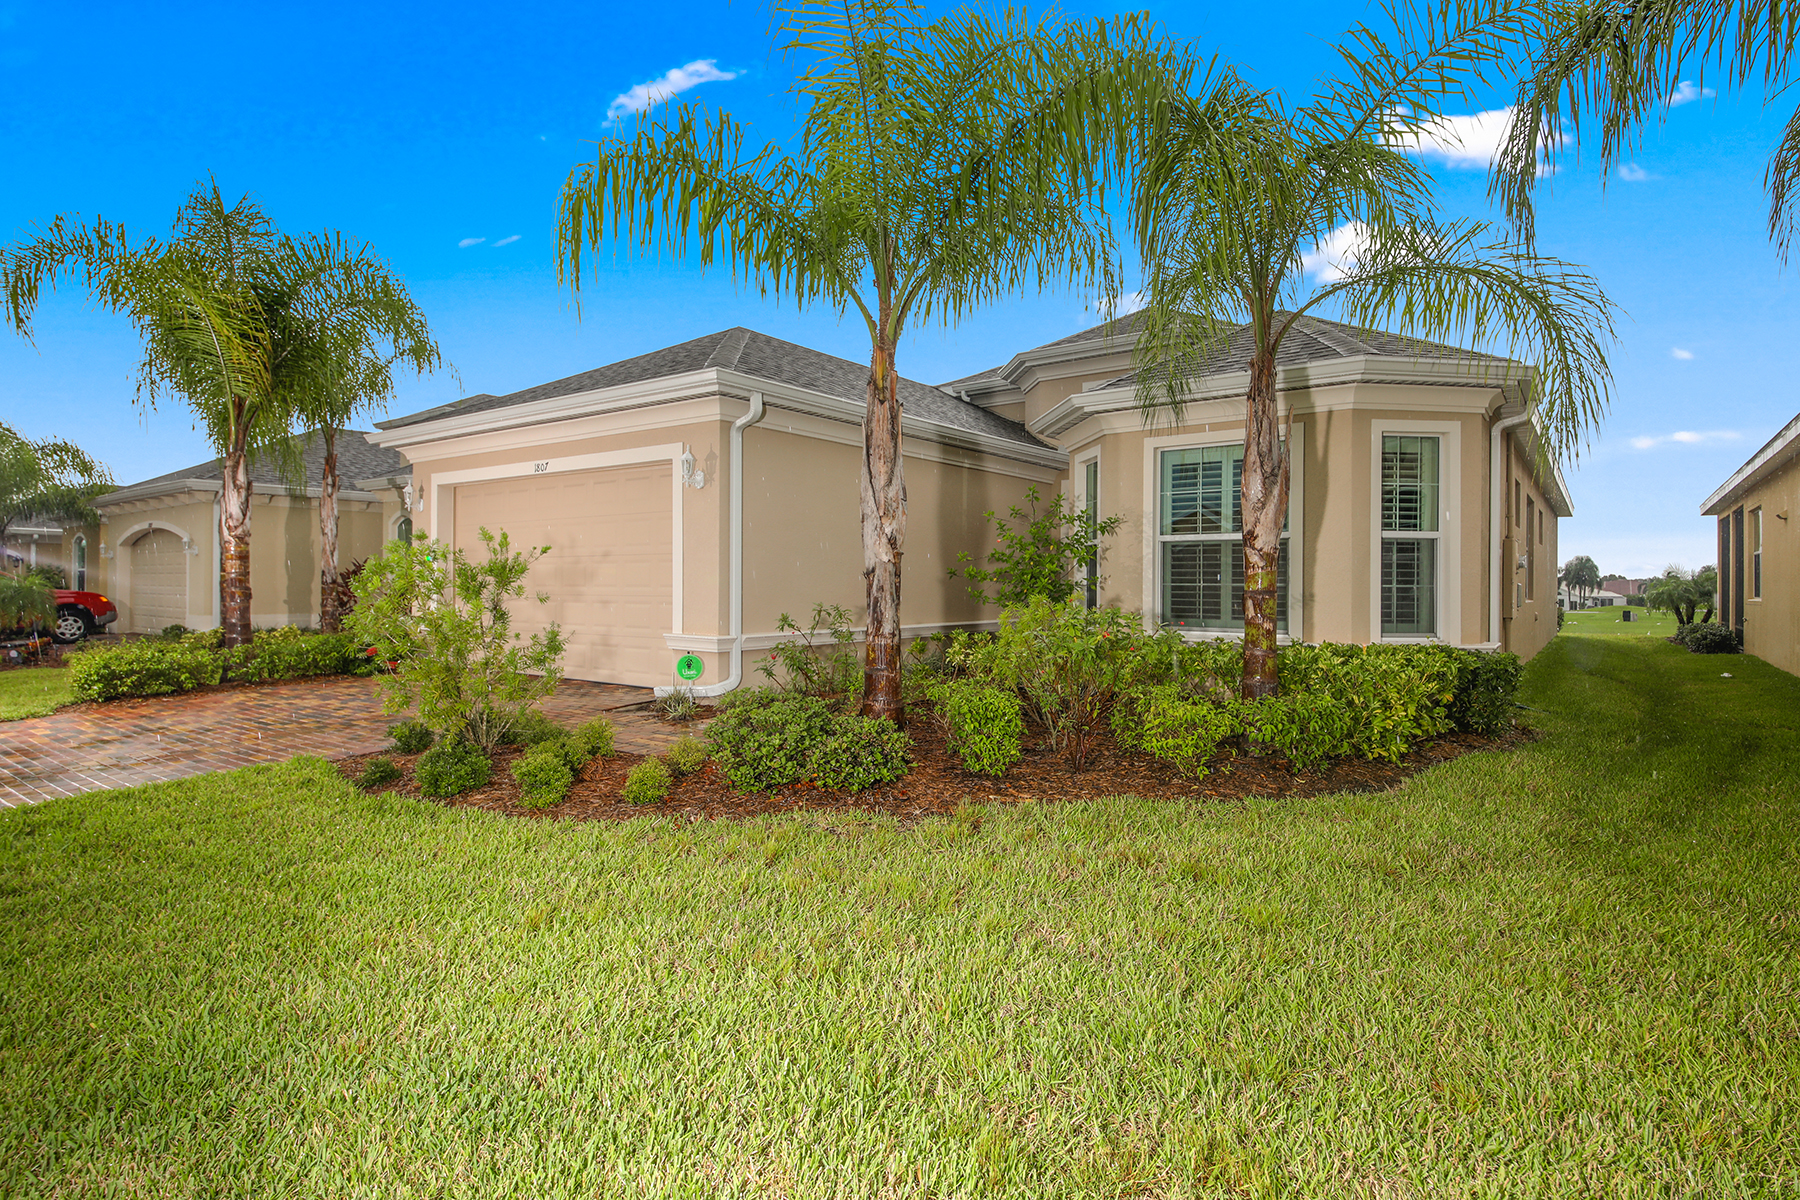 Single Family Homes for Sale at VERONA 1807 Pacific Dunes Dr, Sun City Center, Florida 33573 United States